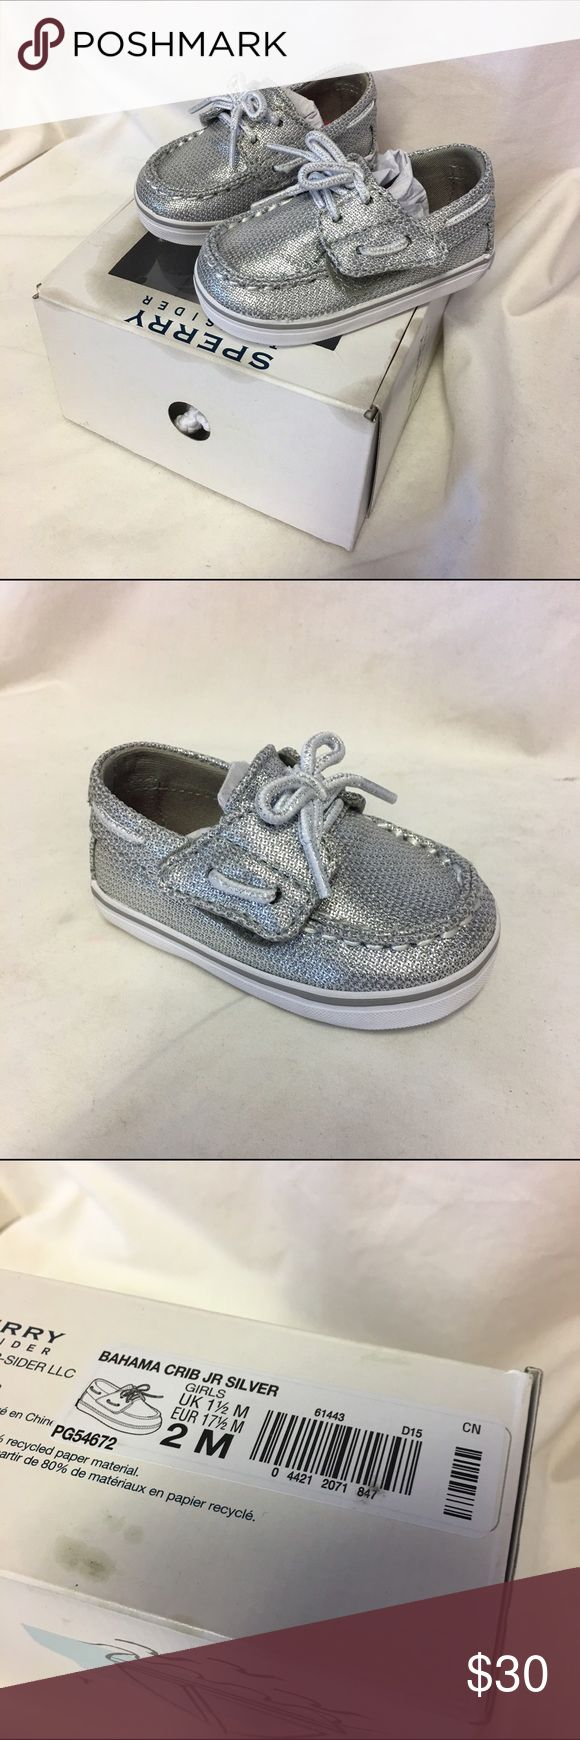 NEW NWT Stride Rite Junior Boat Shoes Silver 2 Does not come with box.  NEW NWT Stride Rite Junior Boat Shoes Silver Bahama 2  New without box (but tag on bottom).  Style is Bahama, size is 2.  #new #nwt #striderite #bahama #boatshoes #silver #kicks #coolkicks #summerkicks #giftable Sperry Shoes Baby & Walker